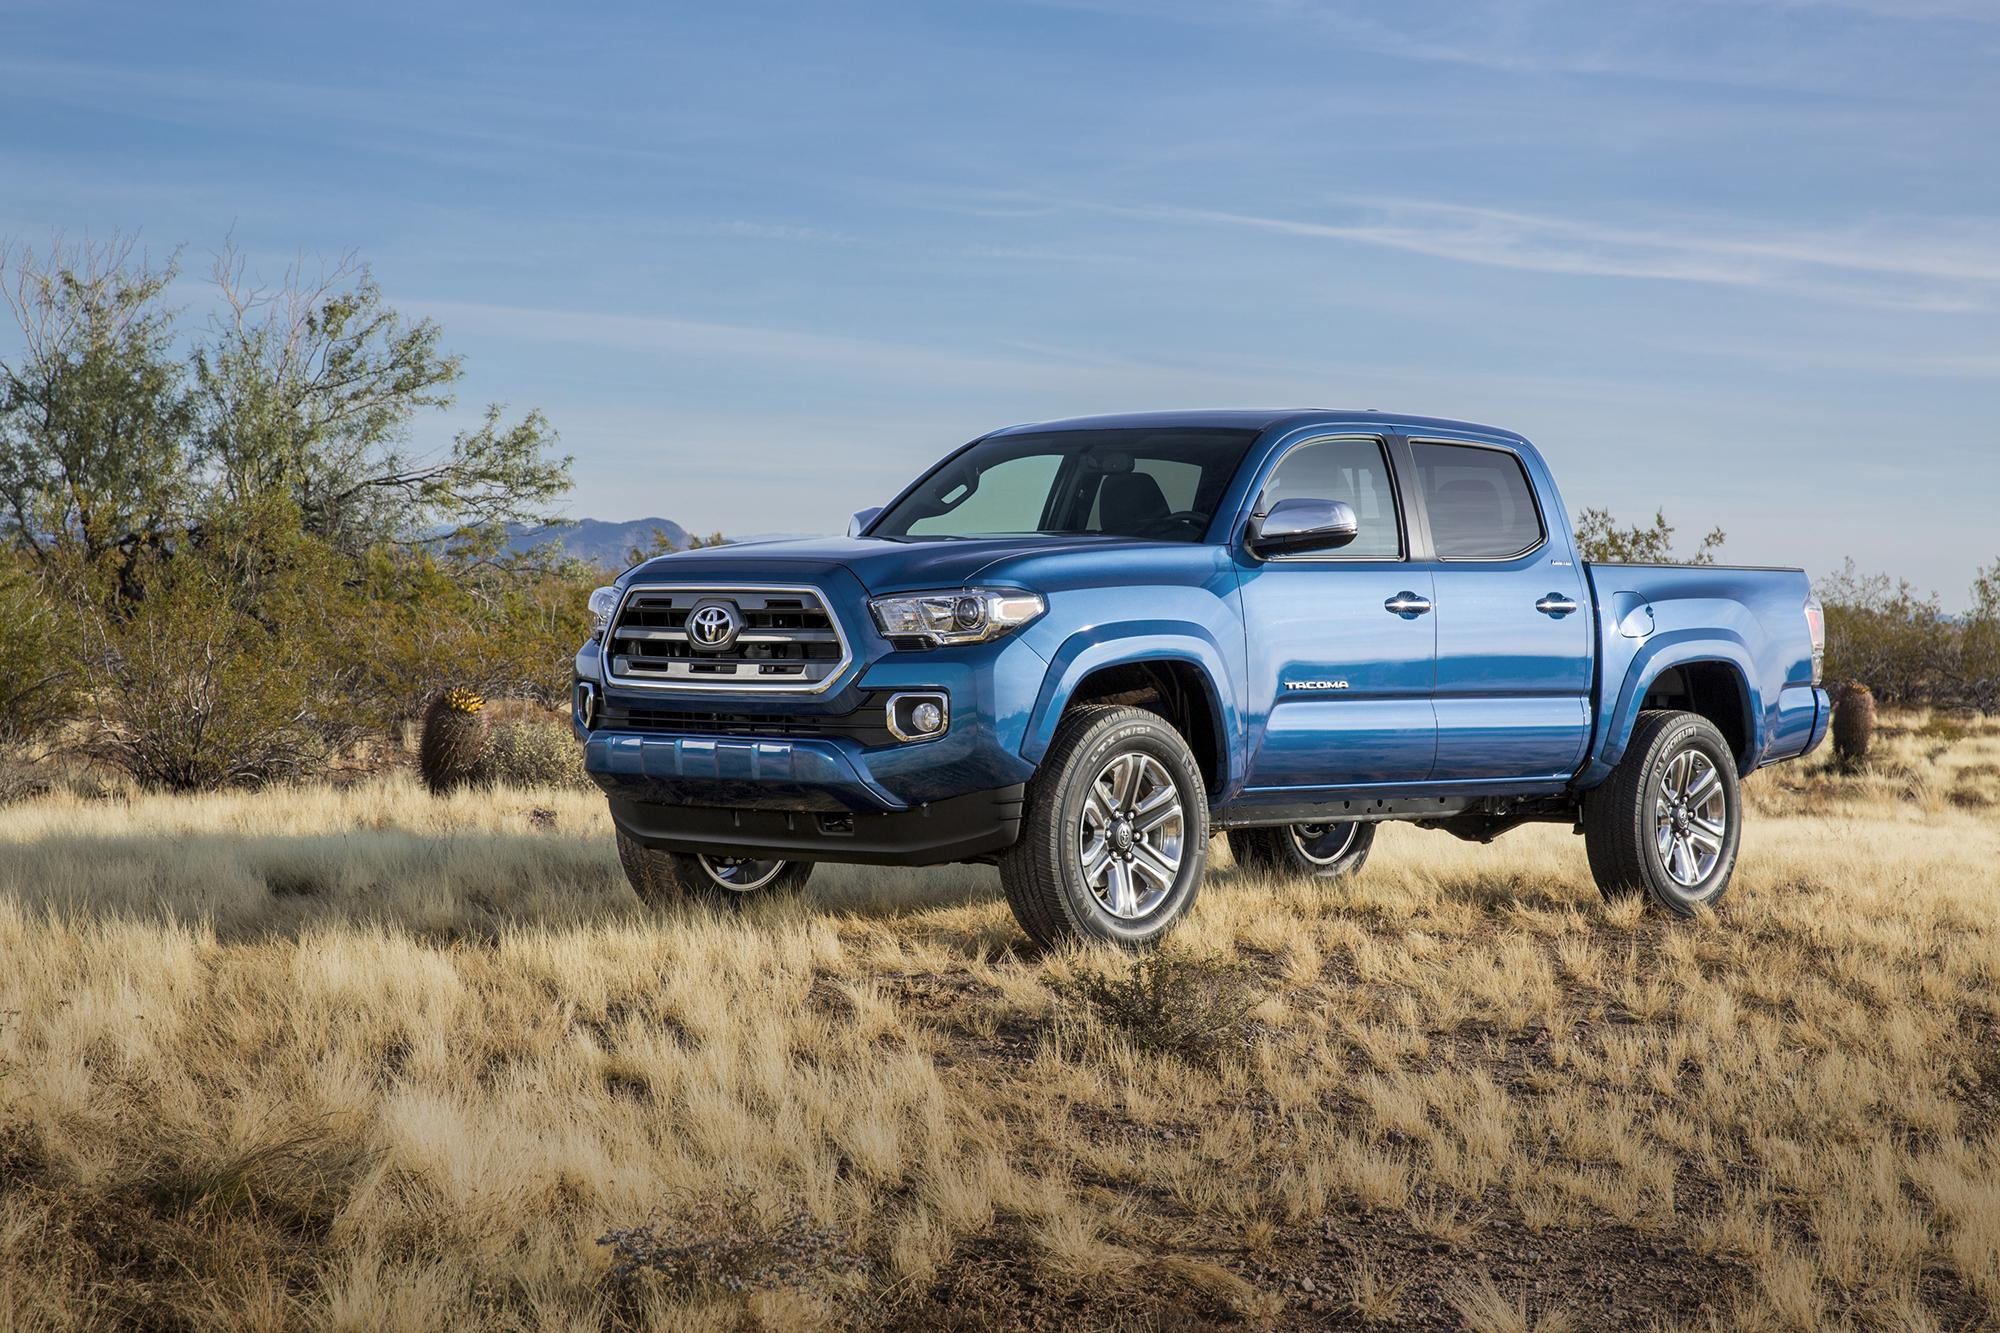 Robust demand for Toyota pickups drives sales unexpectedly higher